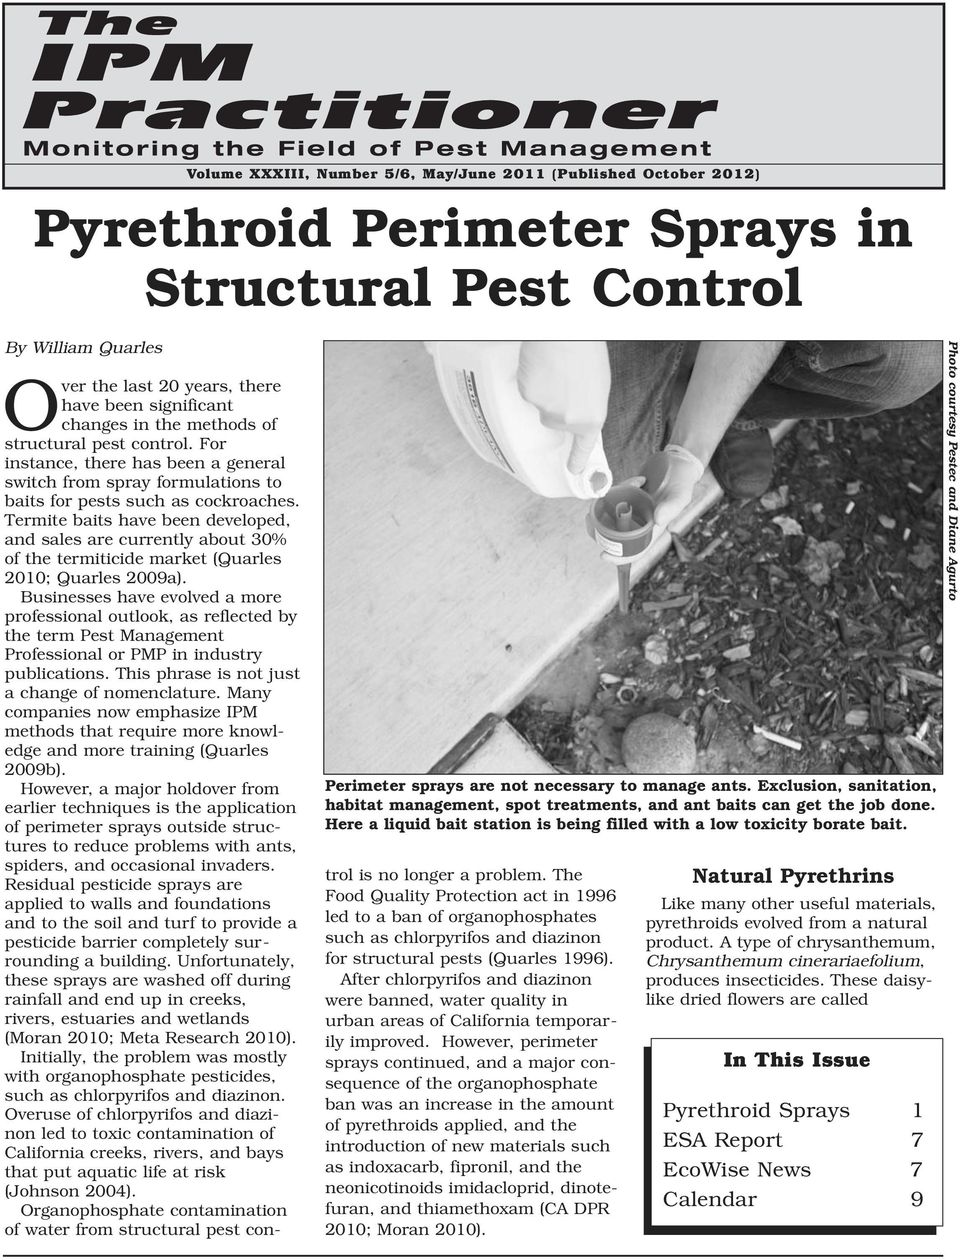 Over the last 20 years, there have been significant changes in the methods of structural pest control.